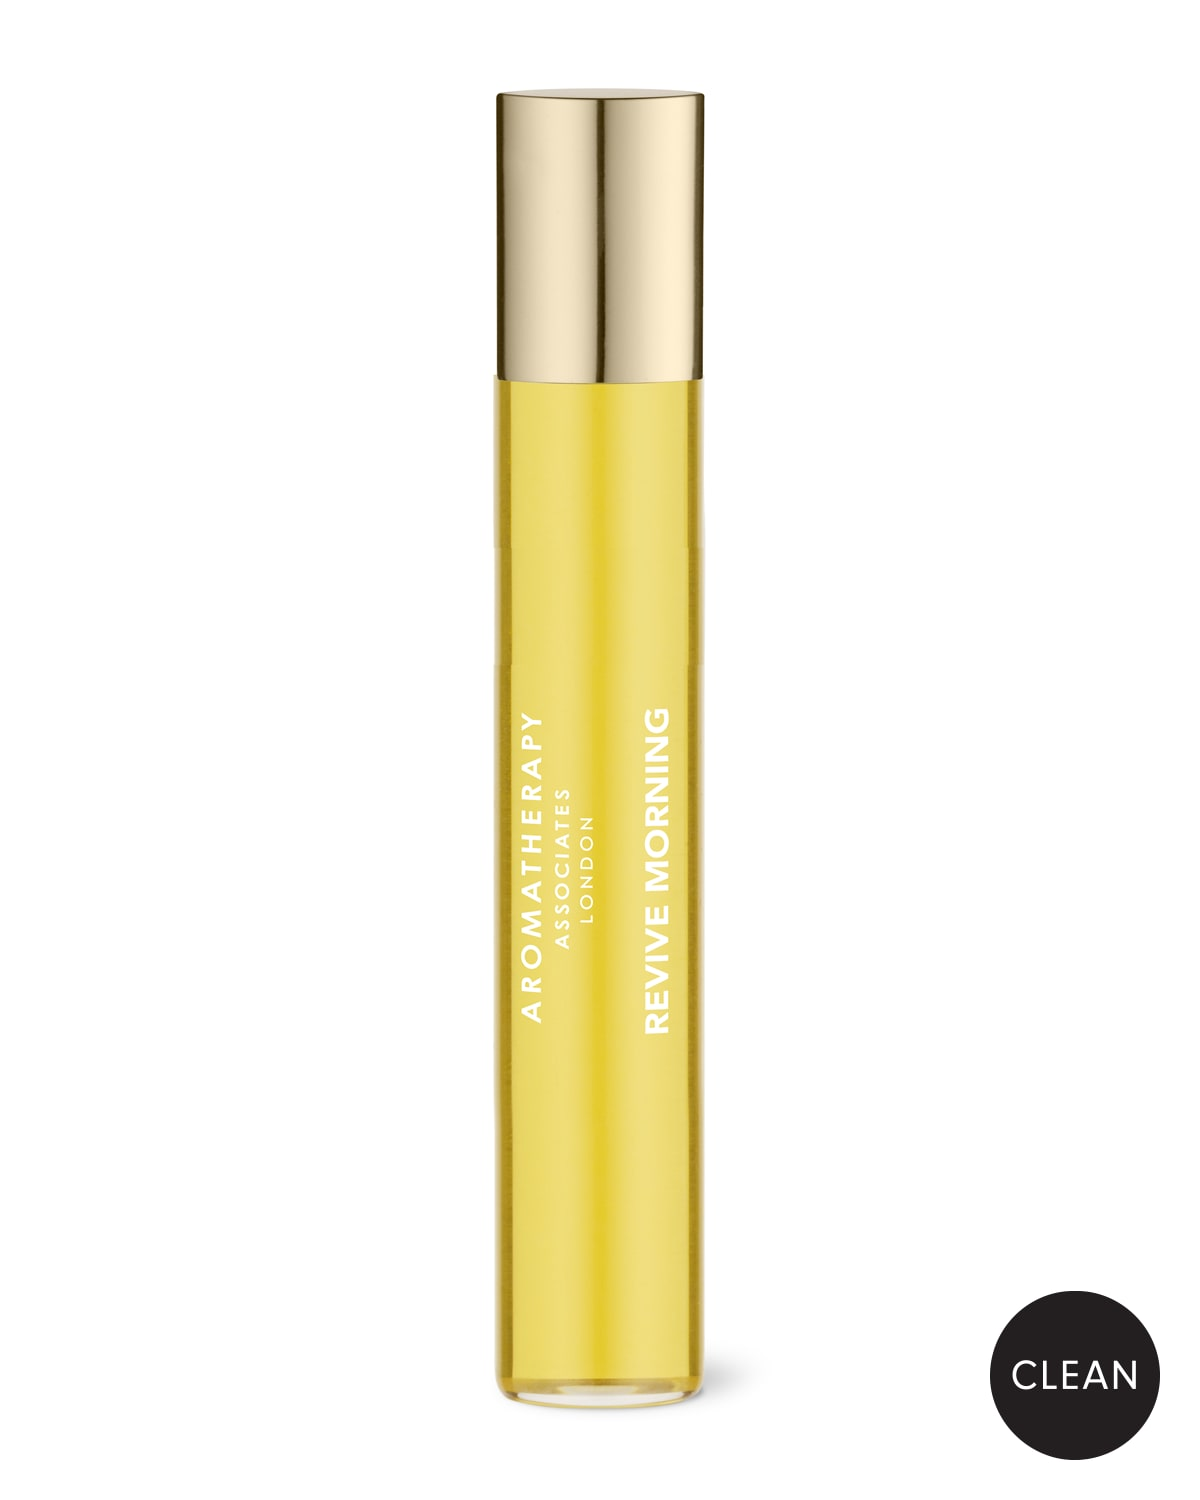 0.34 oz. Revive Morning Rollerball